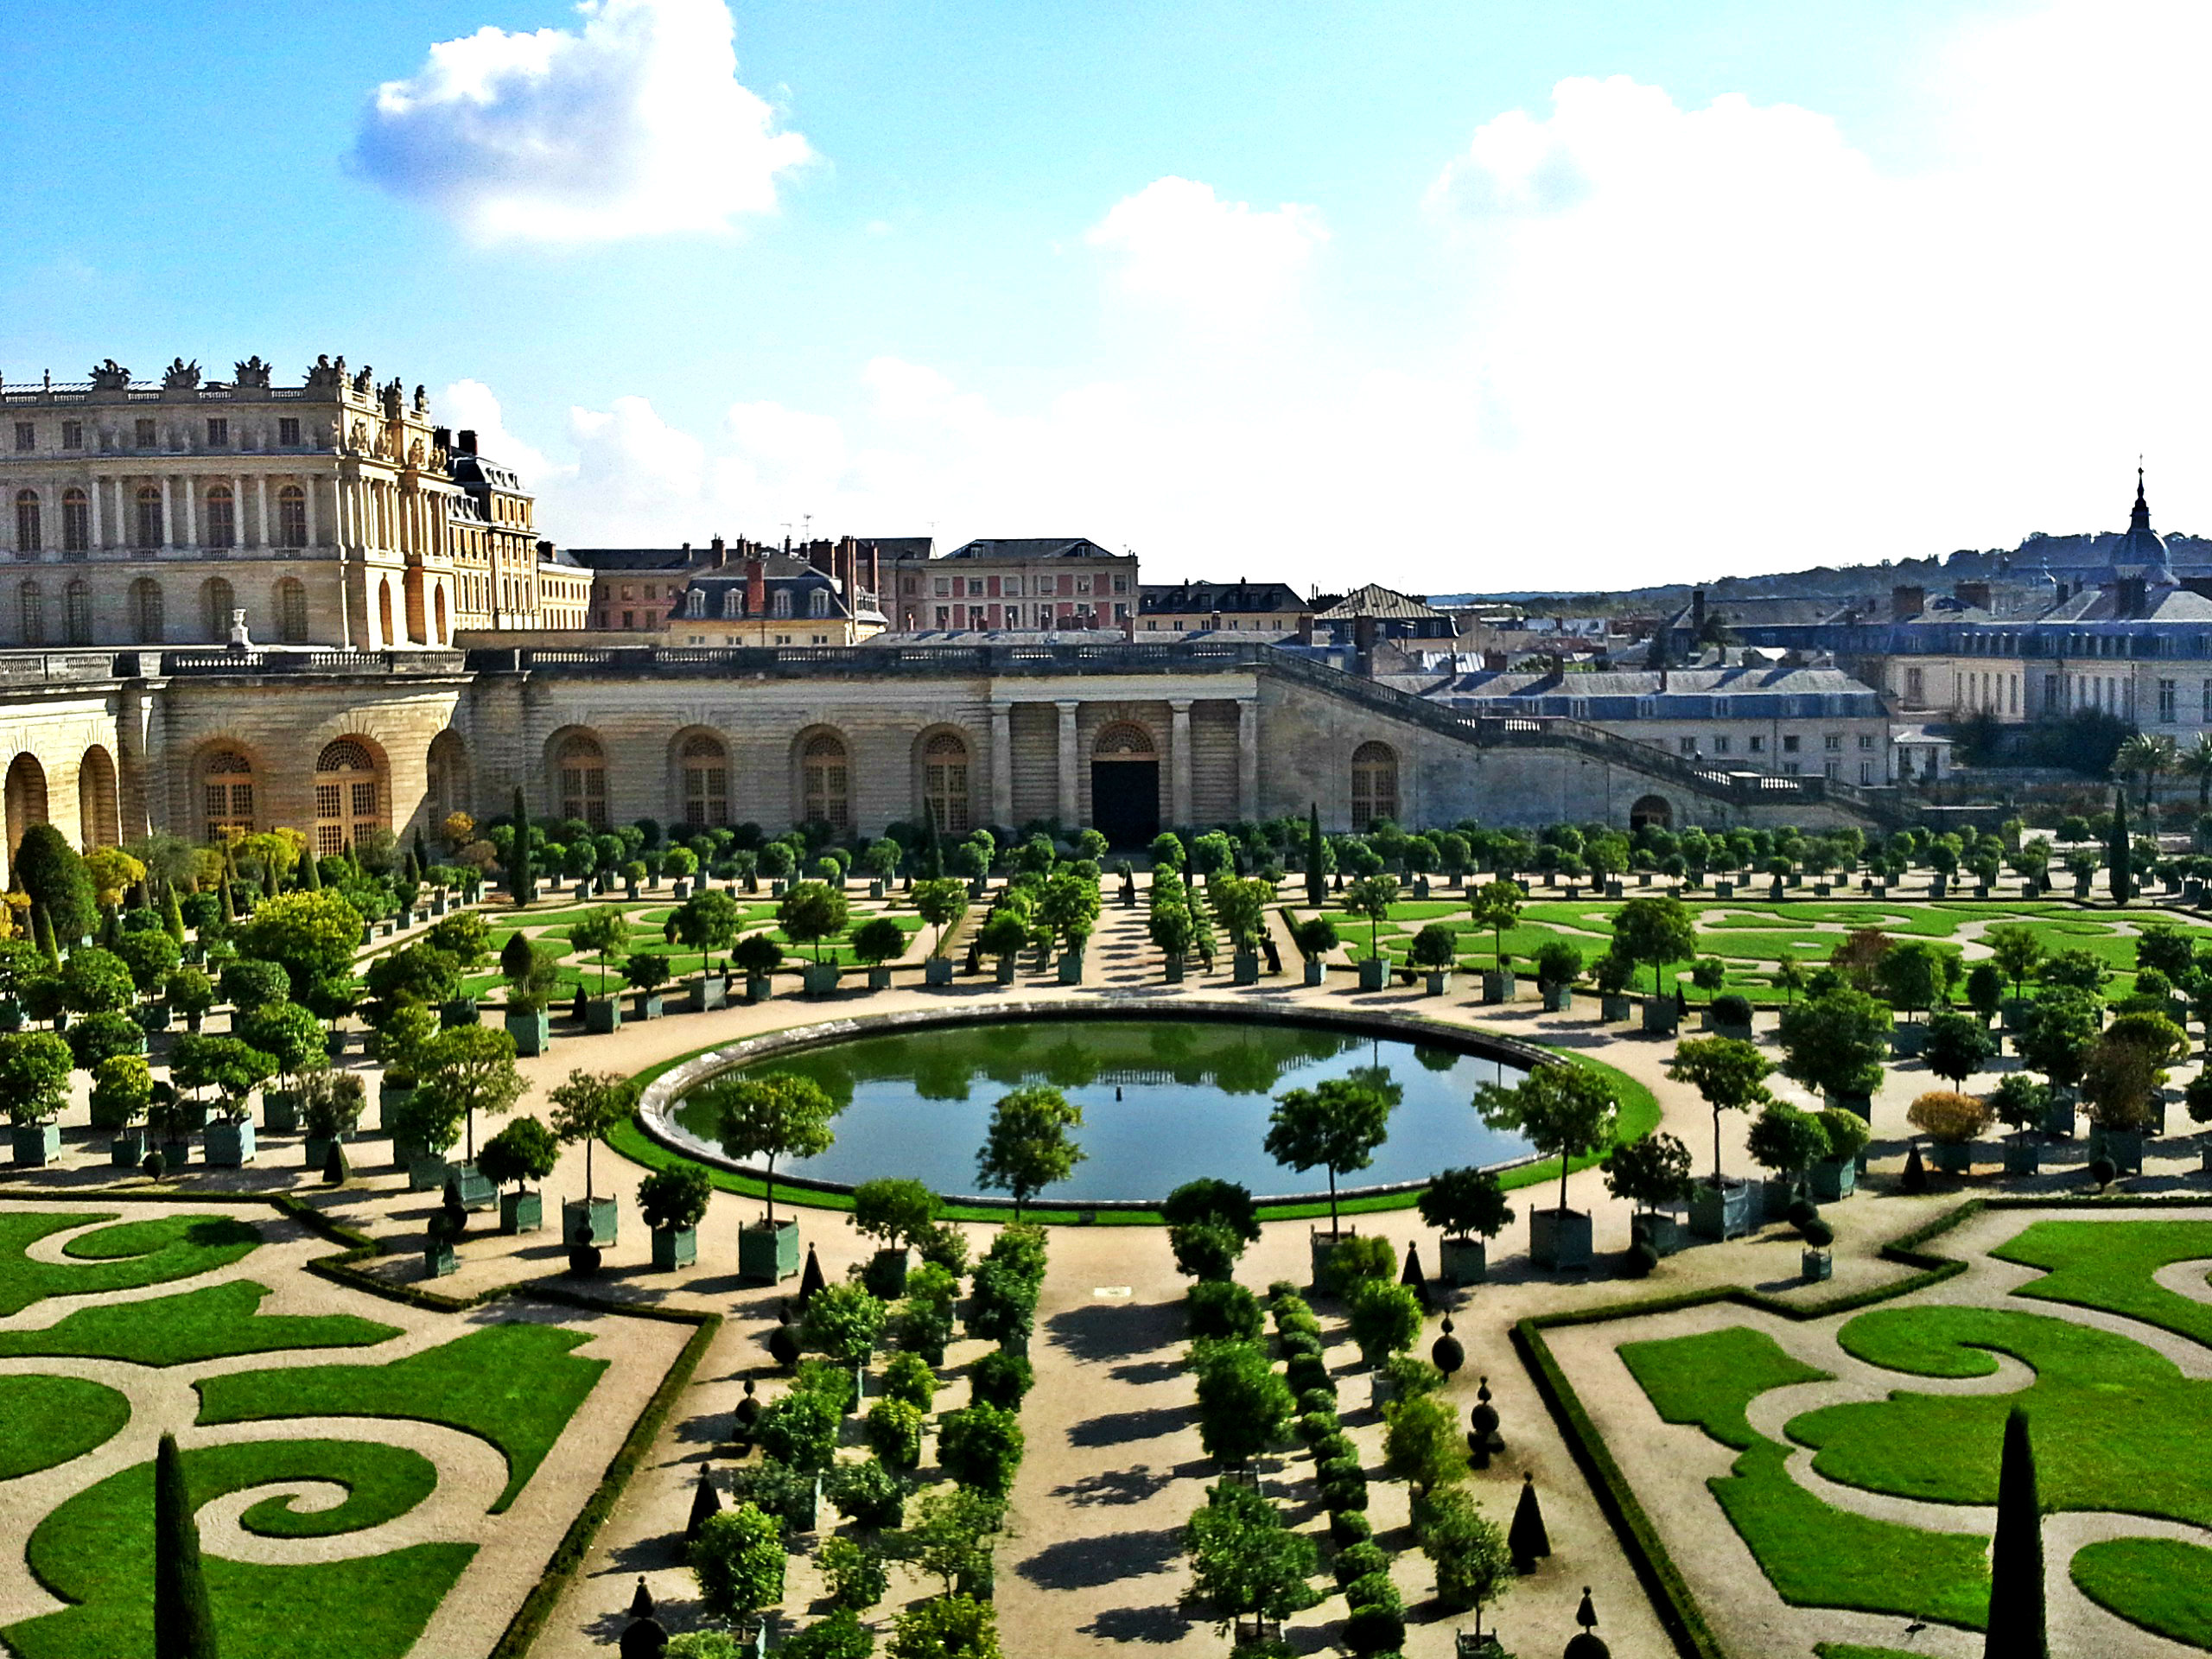 Ch teau de versailles part 2 from paris to ljubljana by gagi - Les jardins de versailles ...